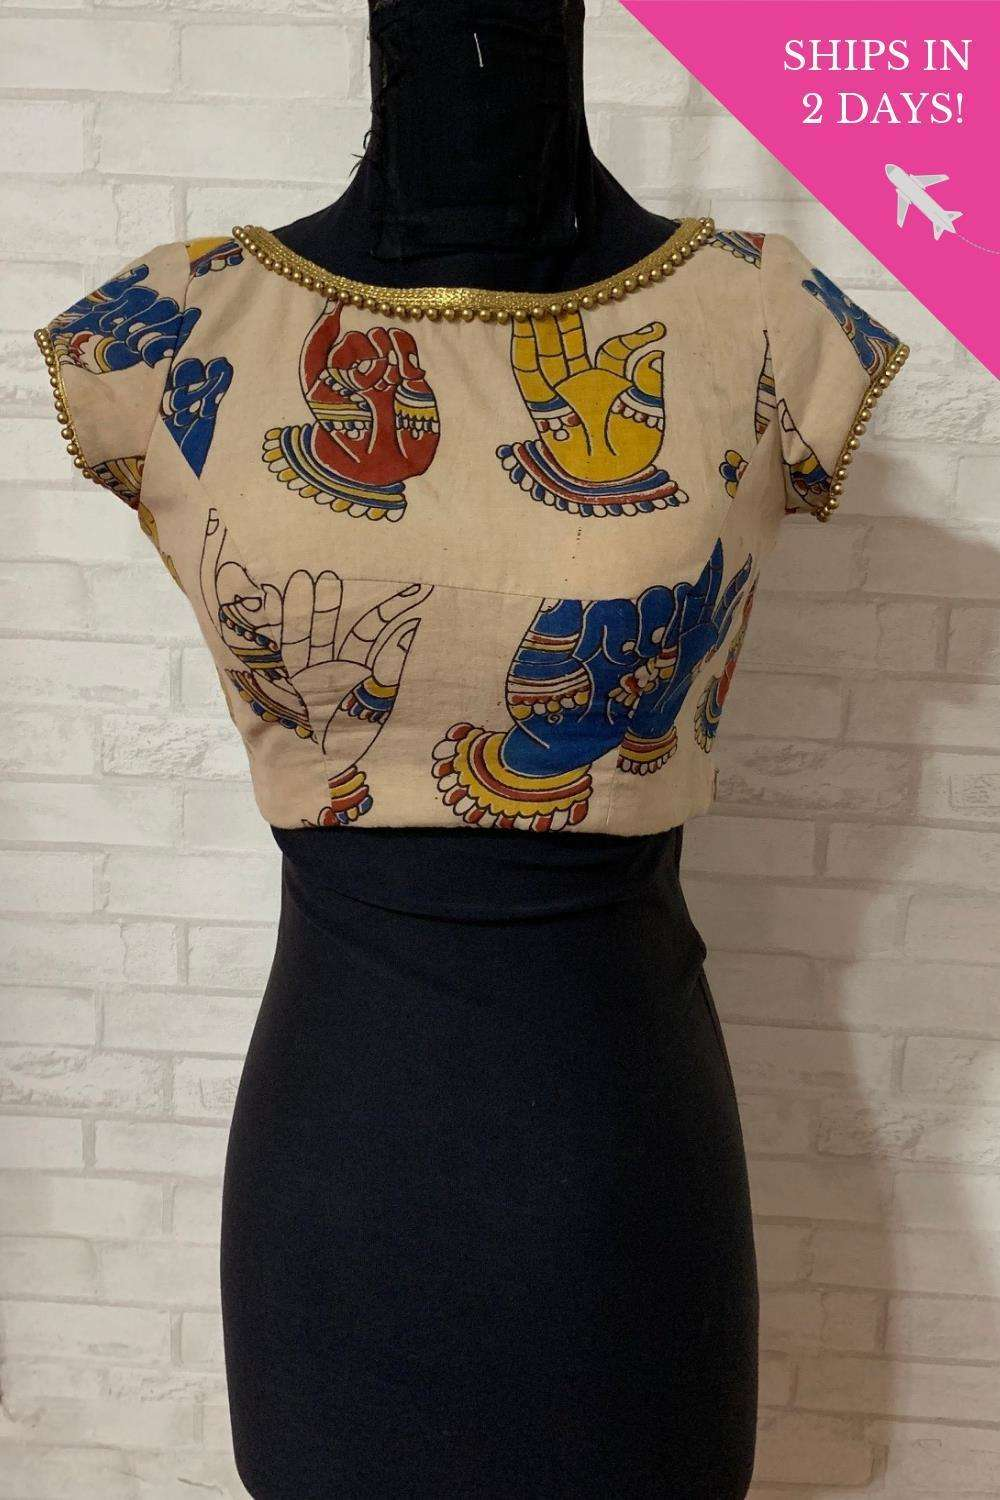 Beige Kalamkari cotton sheer back blouse; Size: 34 - House of Blouse